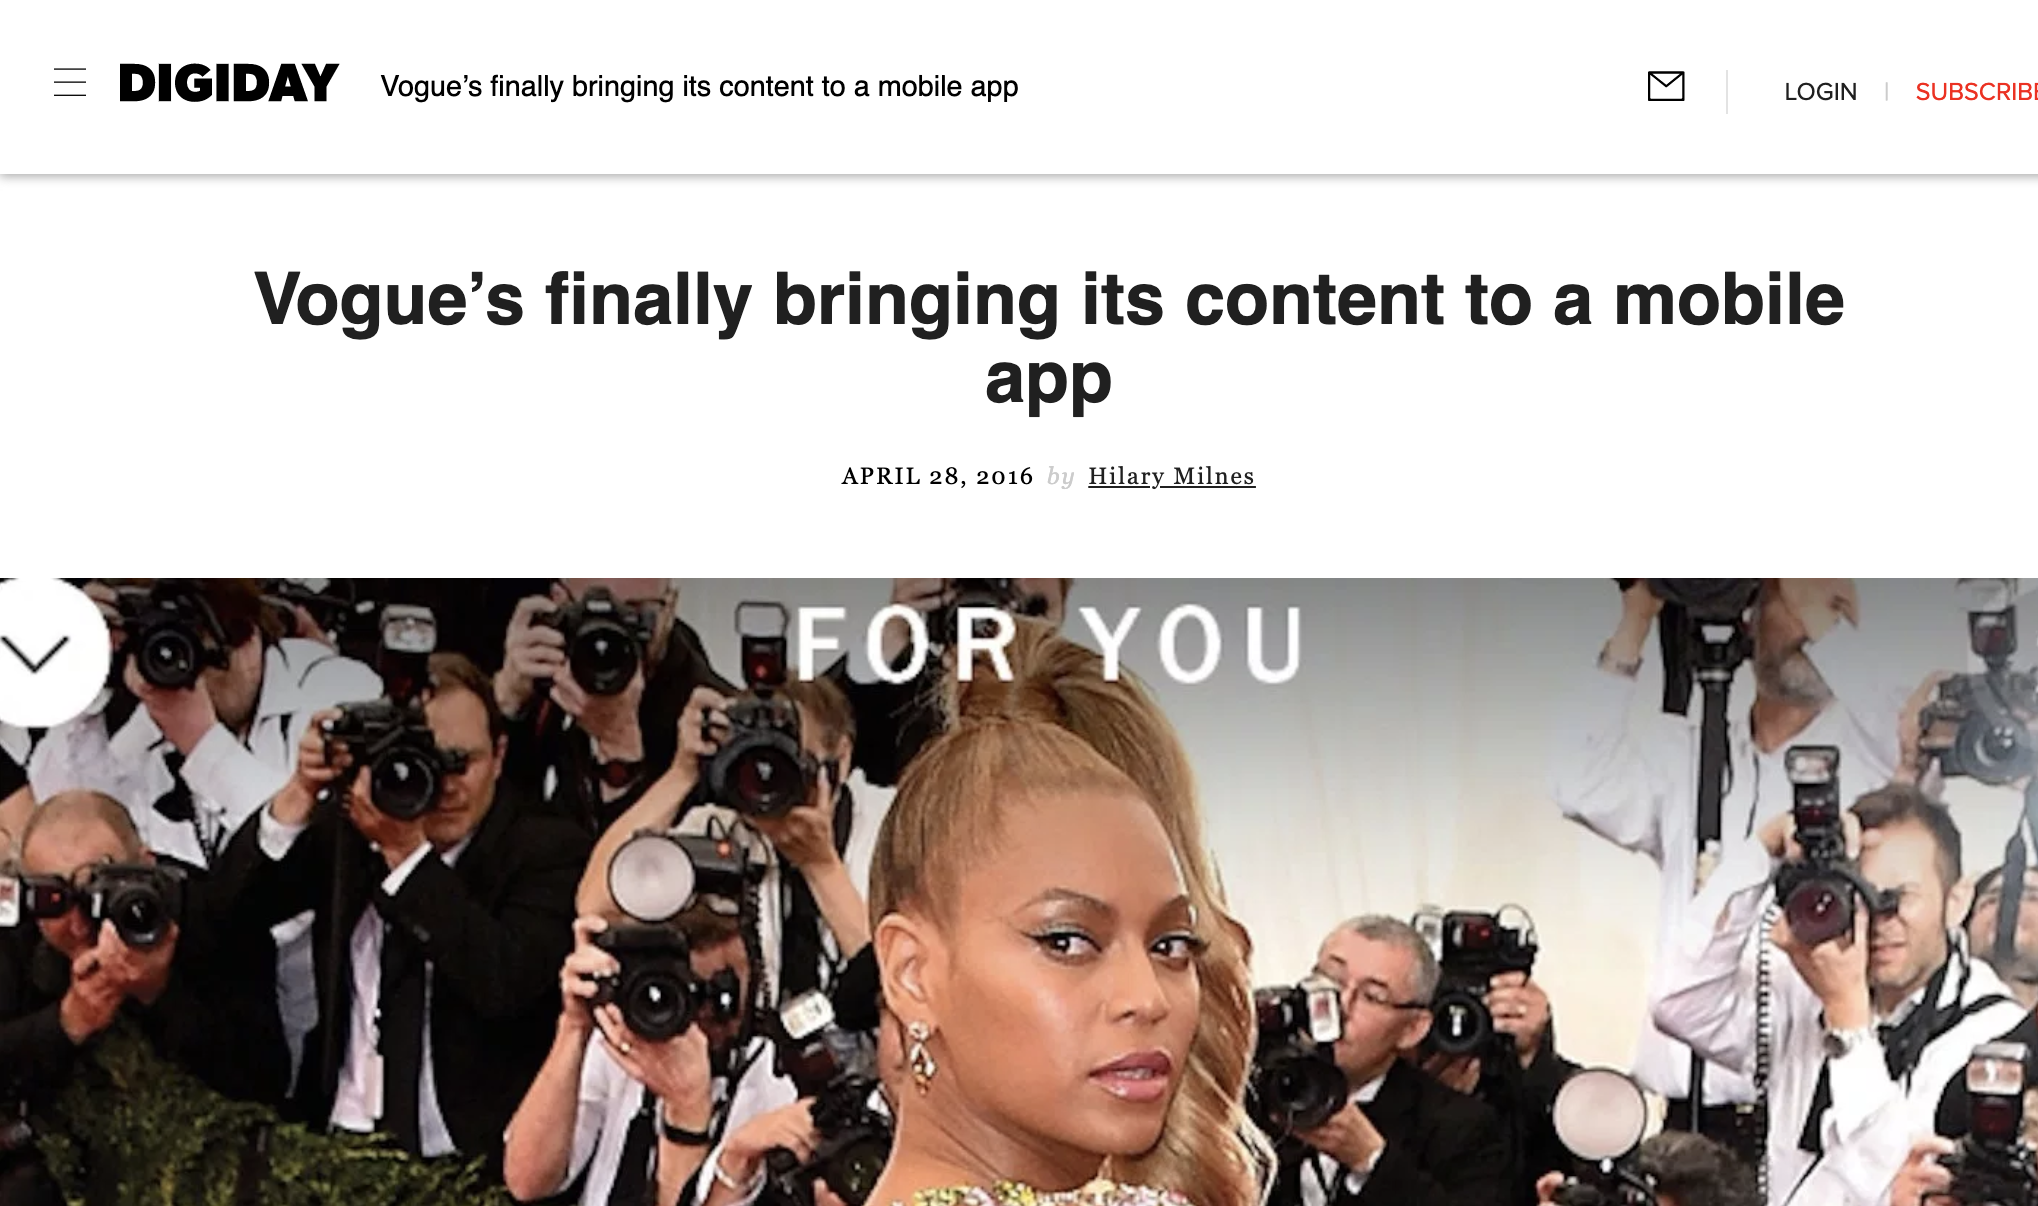 Digiday - Vogue's finally bringing its content to a mobile app